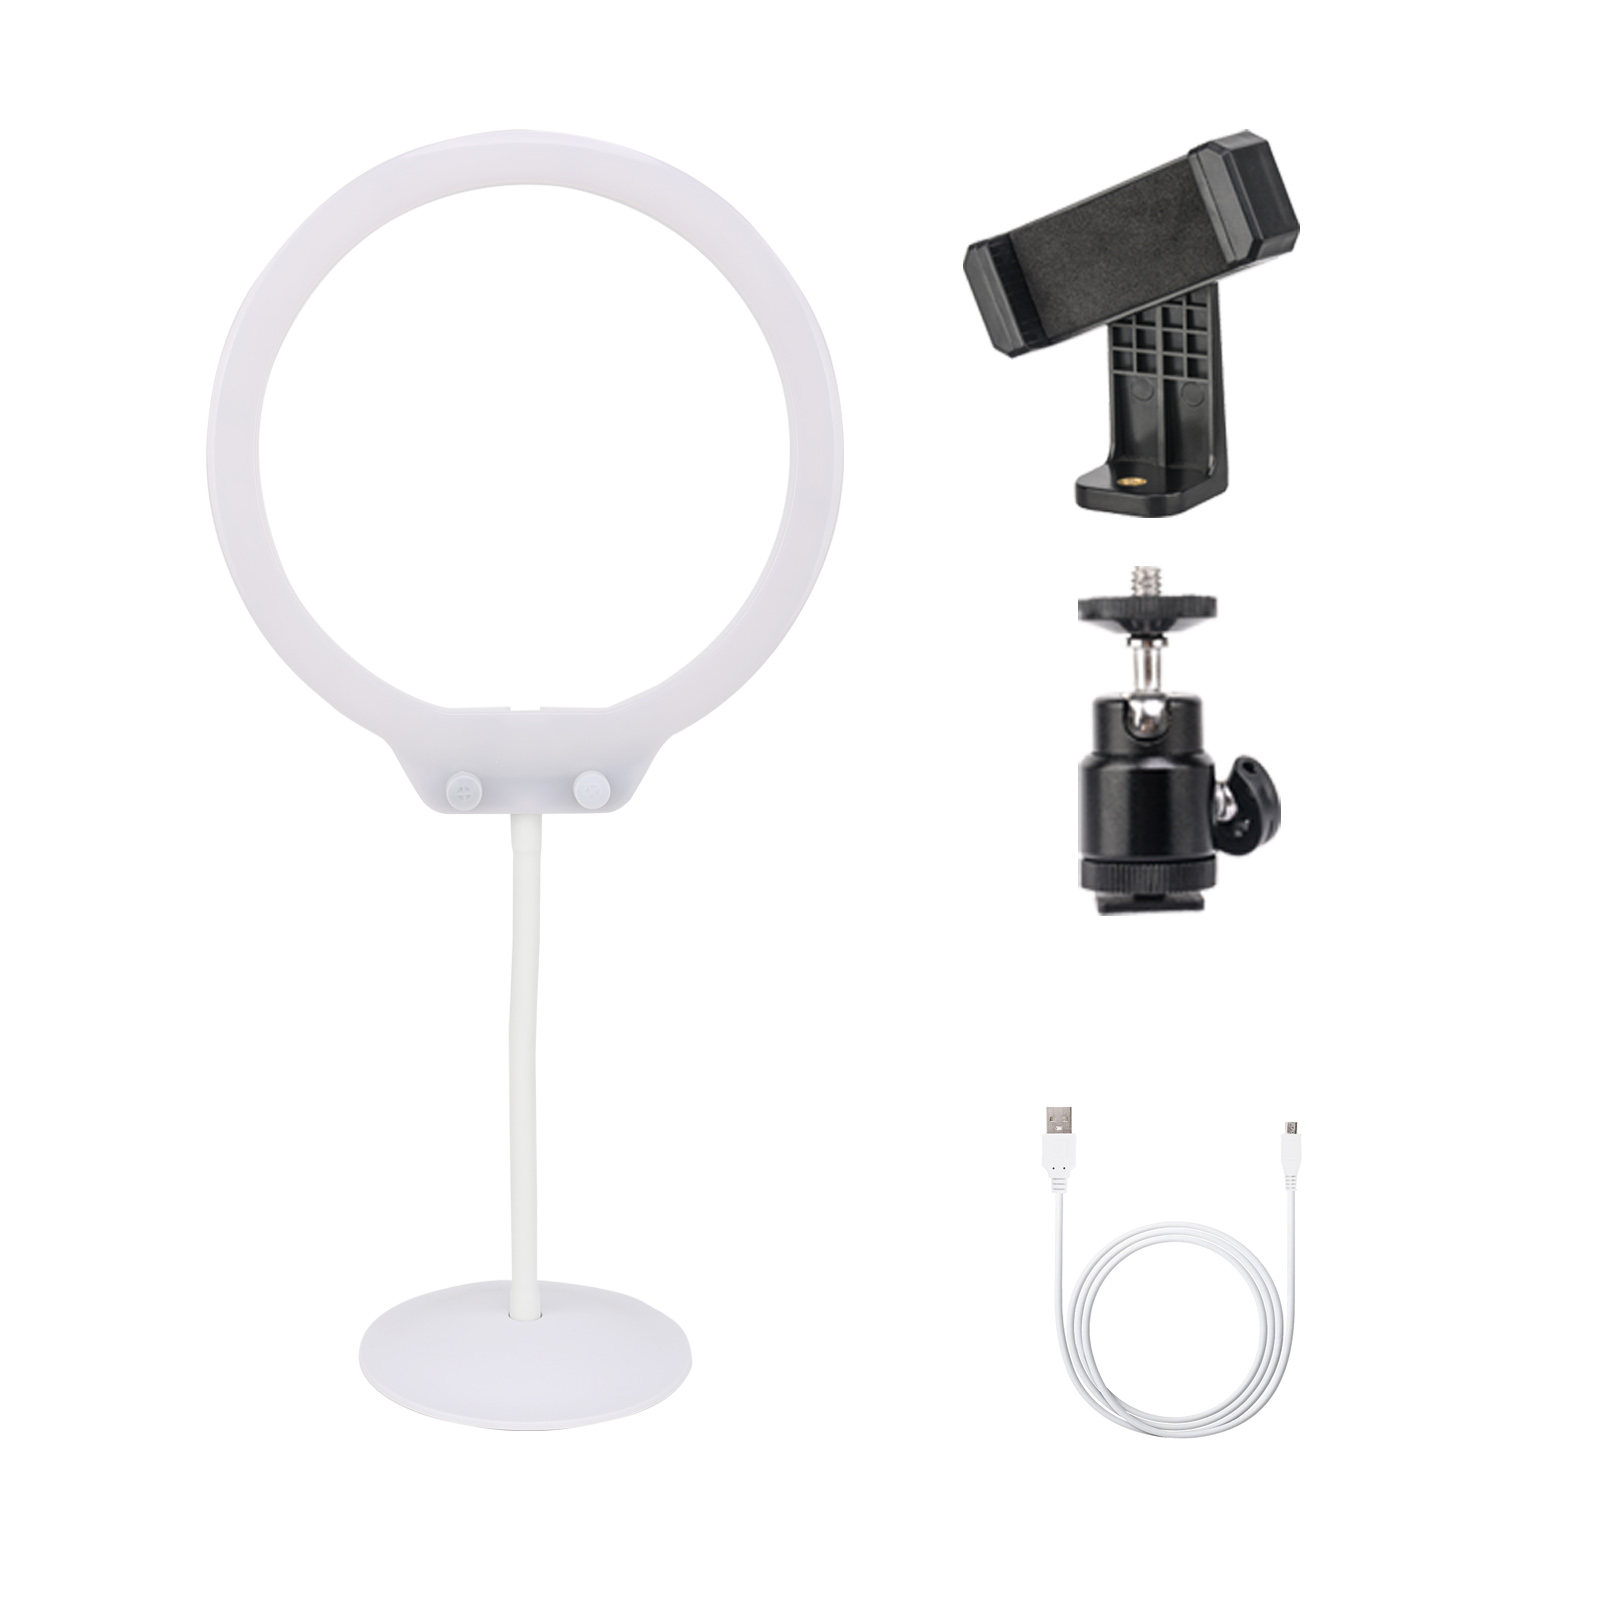 Makeup Ring And Lights: ZOMEI LED Ring Light Tabletop Dimmable Makeup Lighting